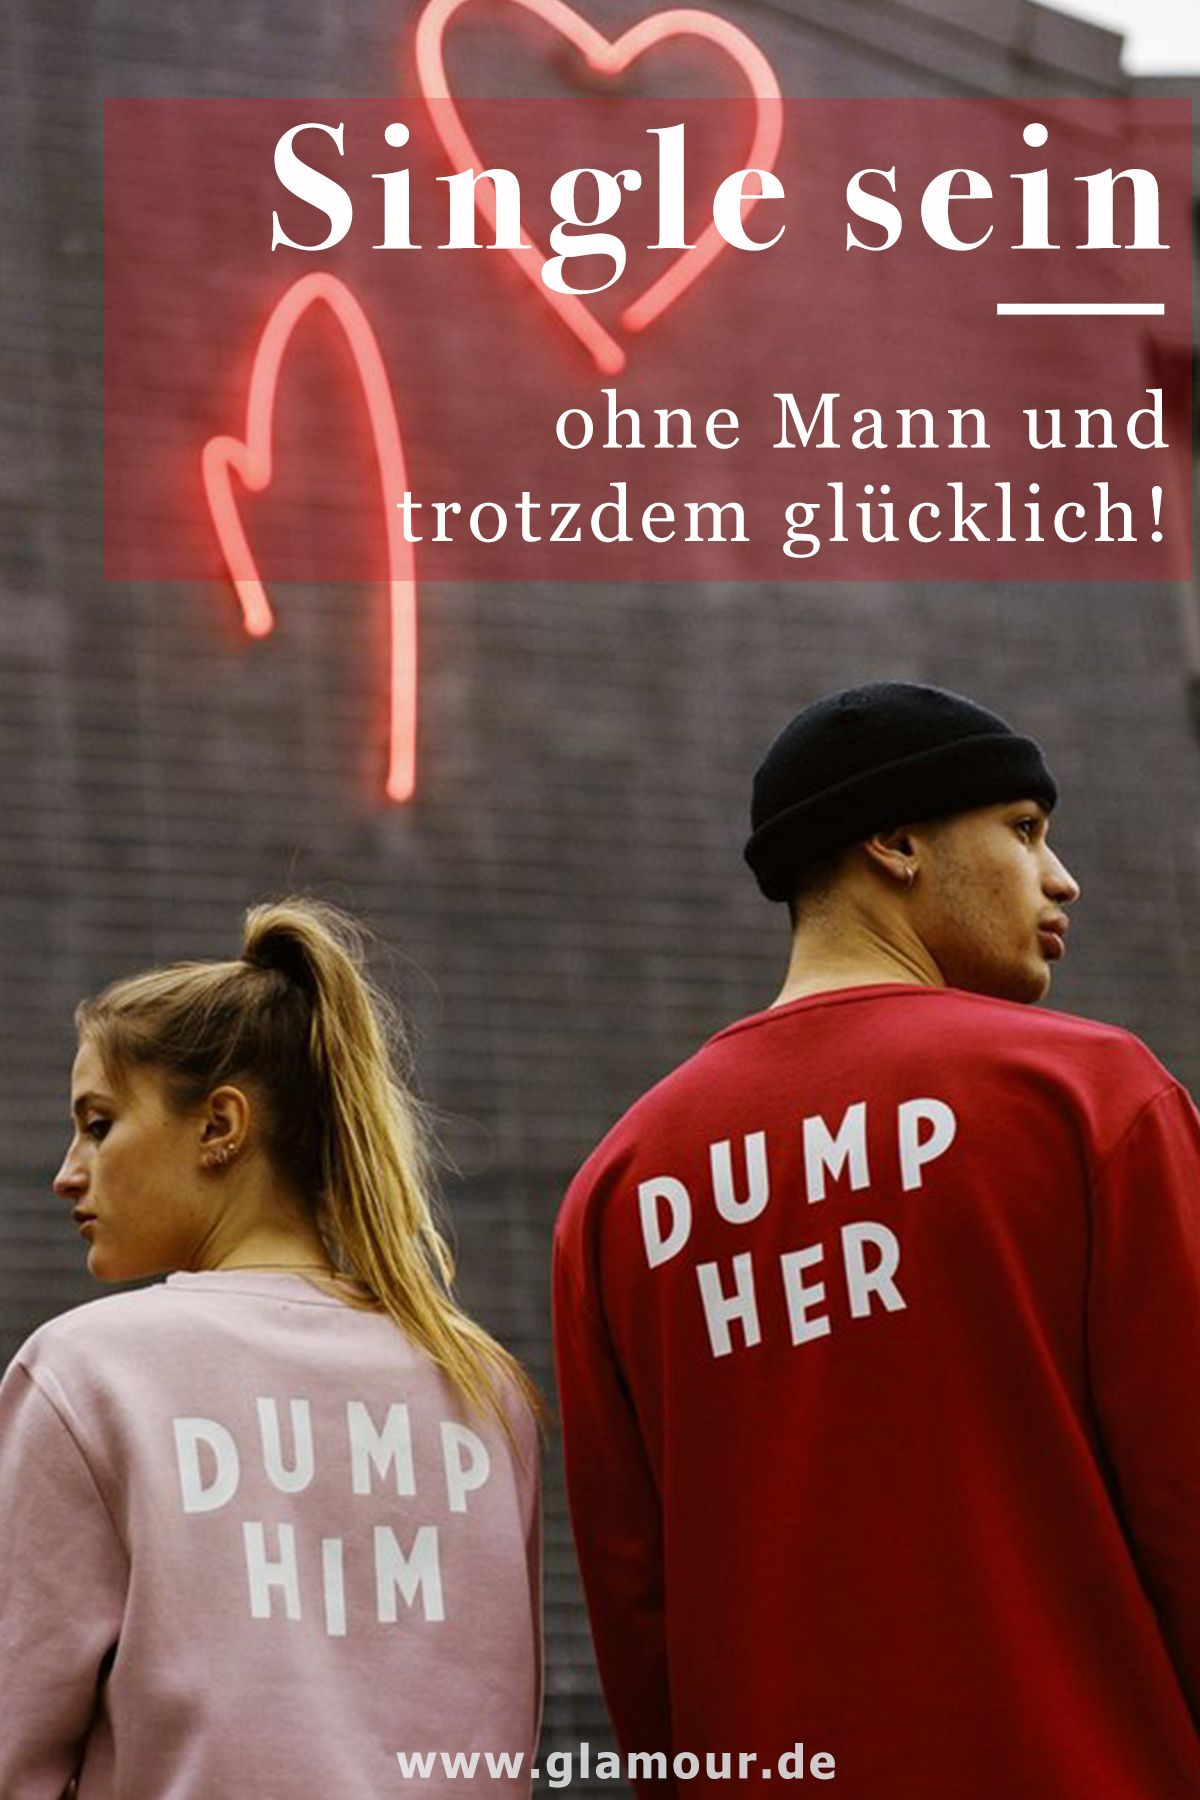 Single sein als mann [PUNIQRANDLINE-(au-dating-names.txt) 45